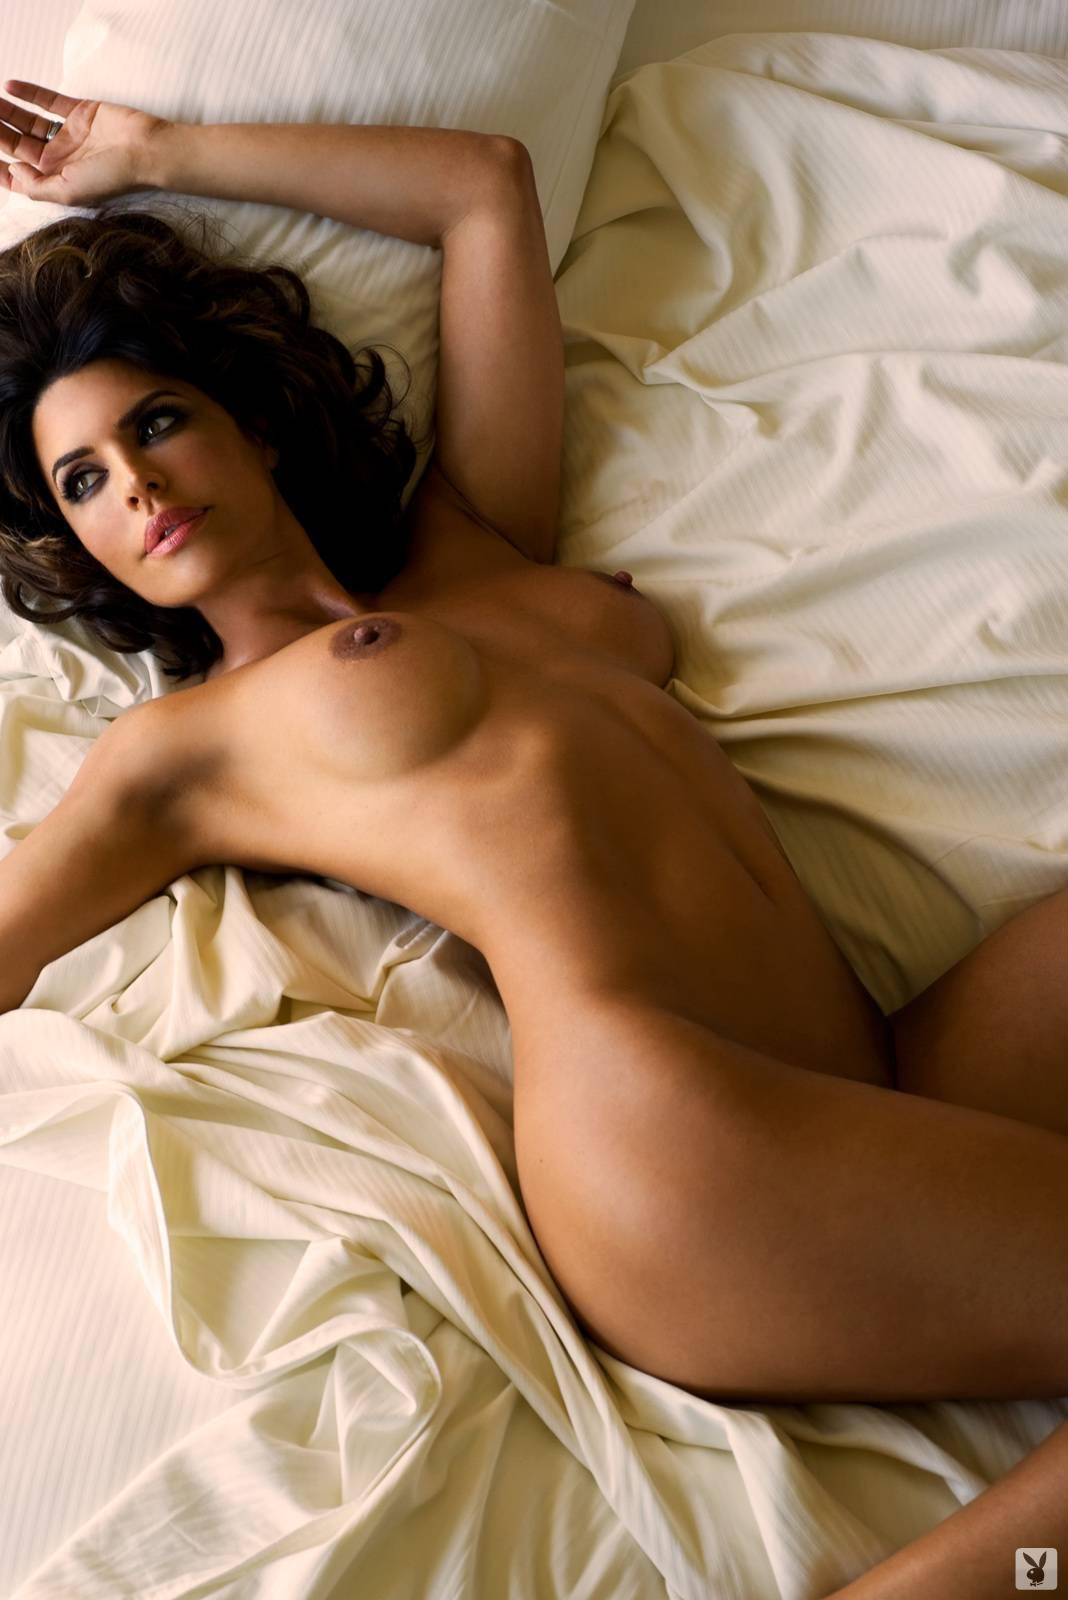 Was and naked playboy rinna lisa think, that you